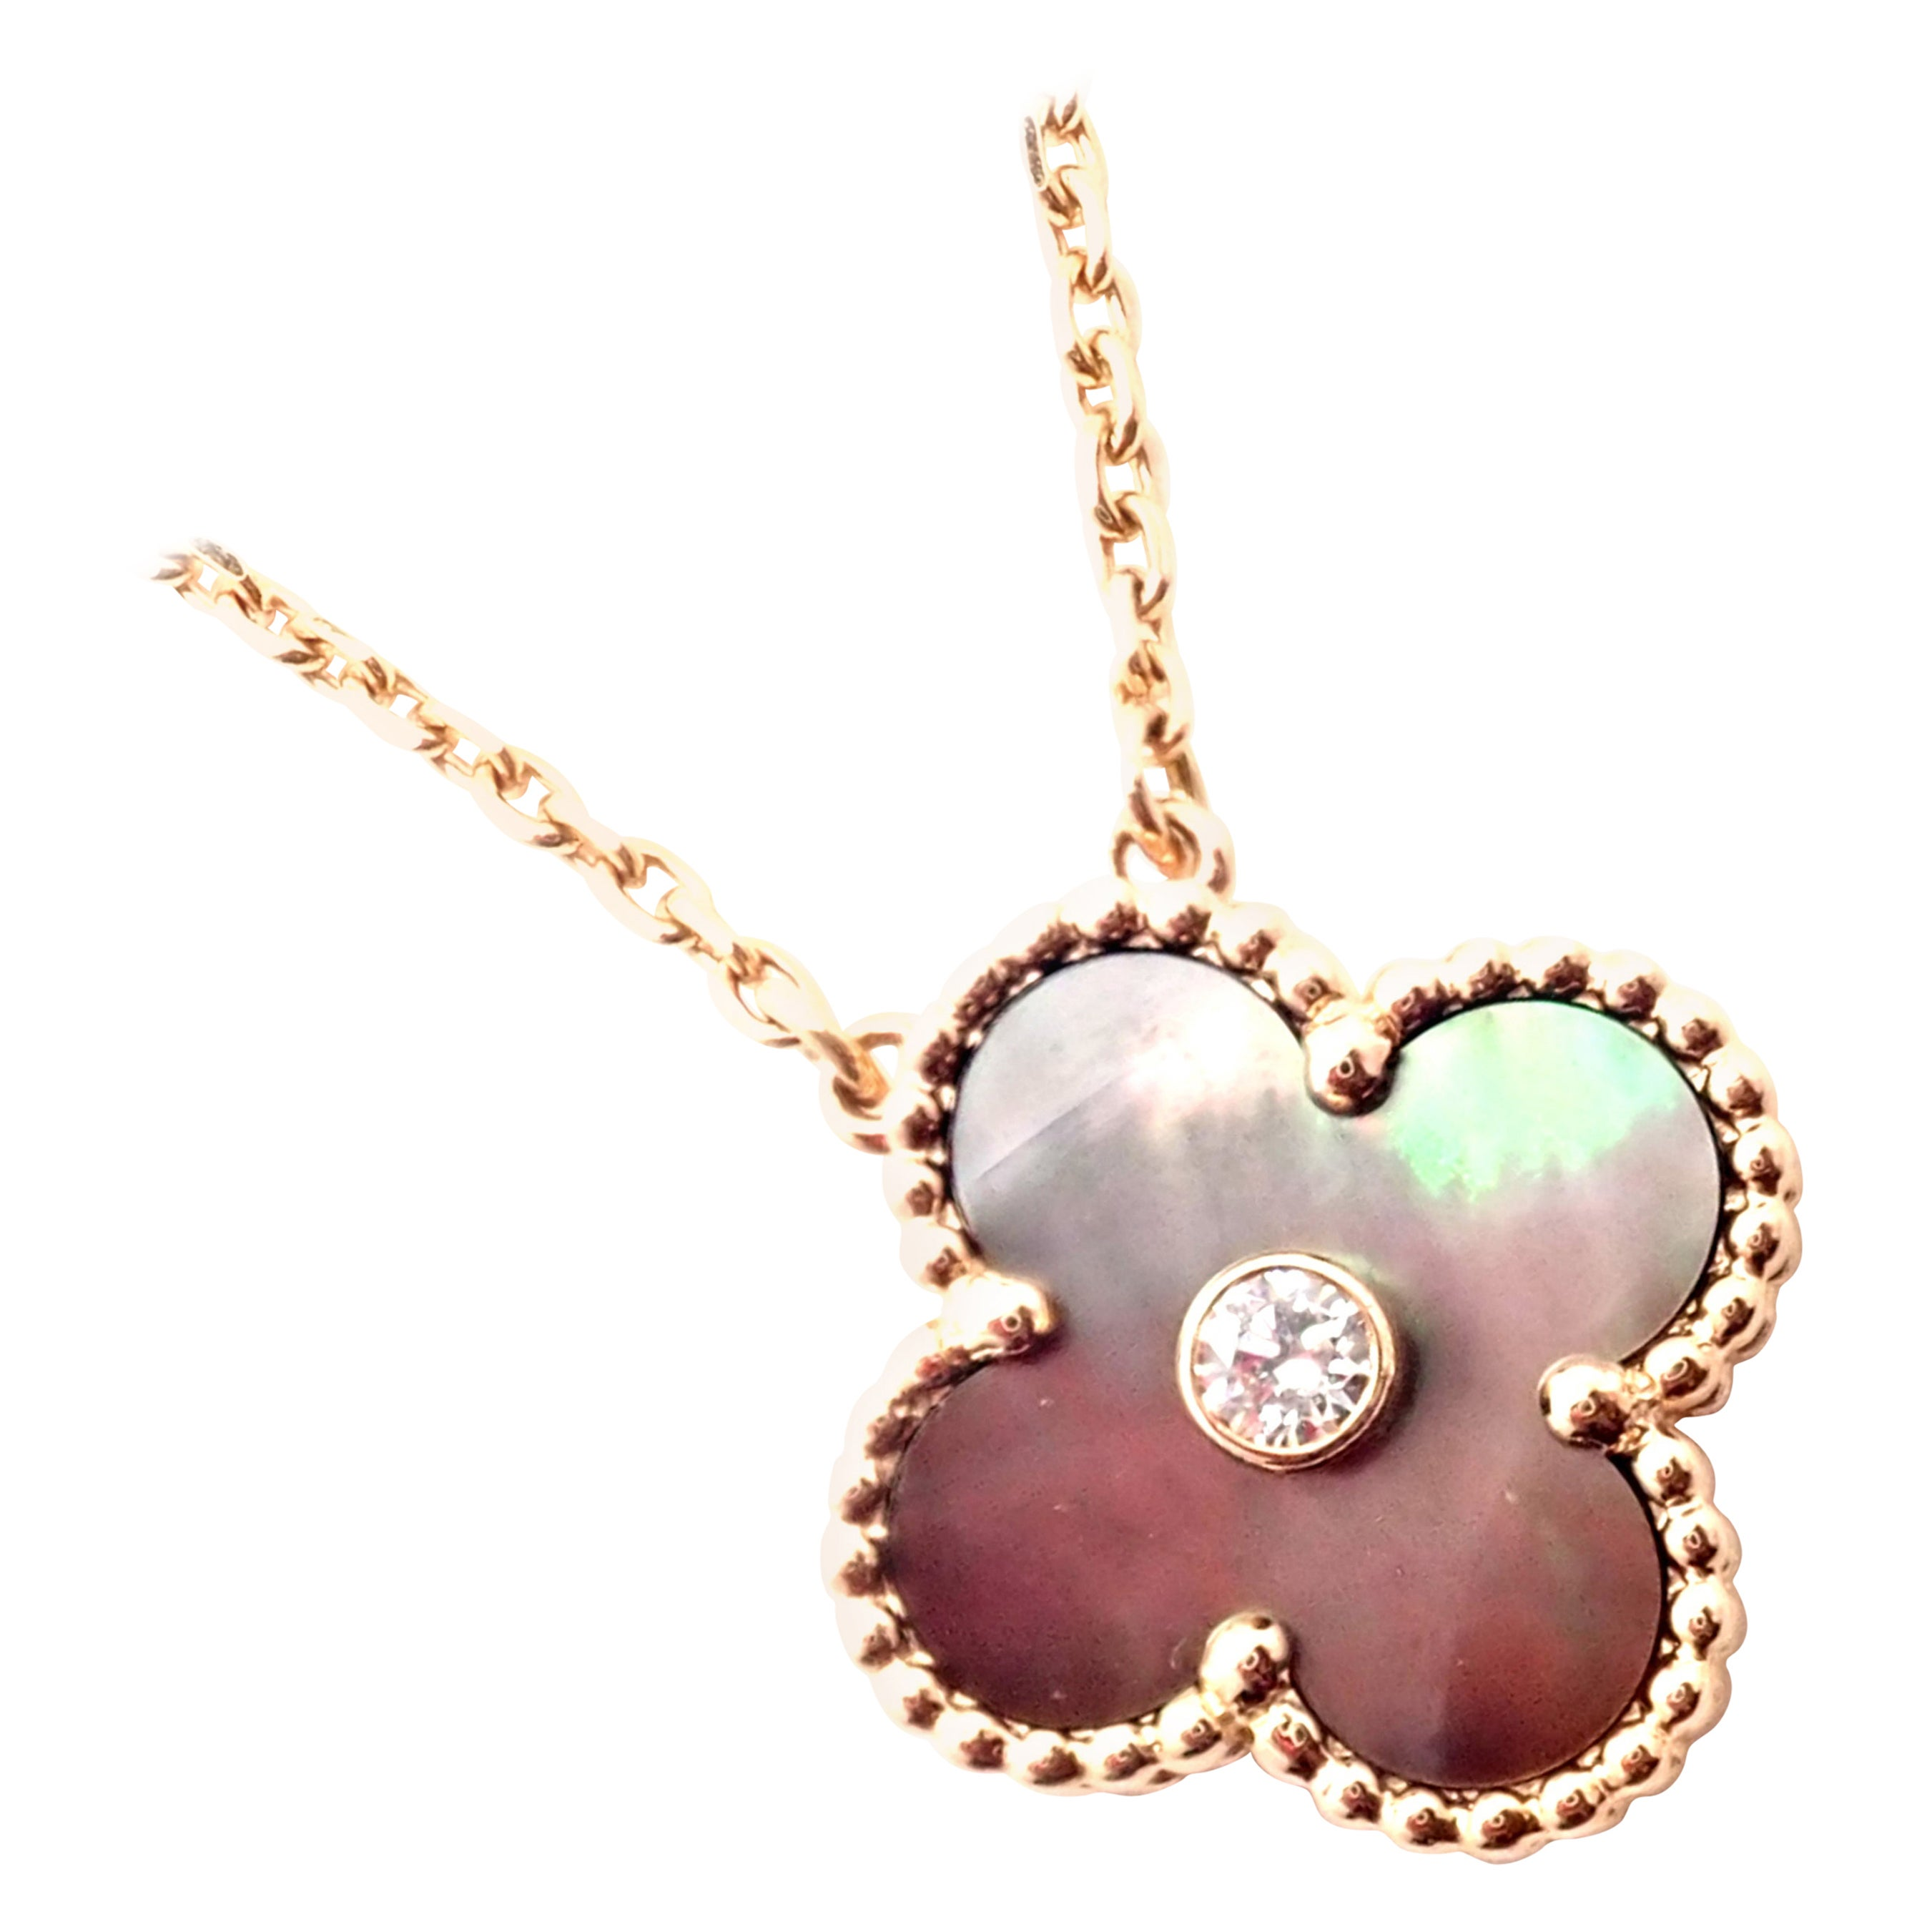 Van Cleef & Arpels Alhambra Diamond Grey Mother of Pearl Rose Gold Necklace